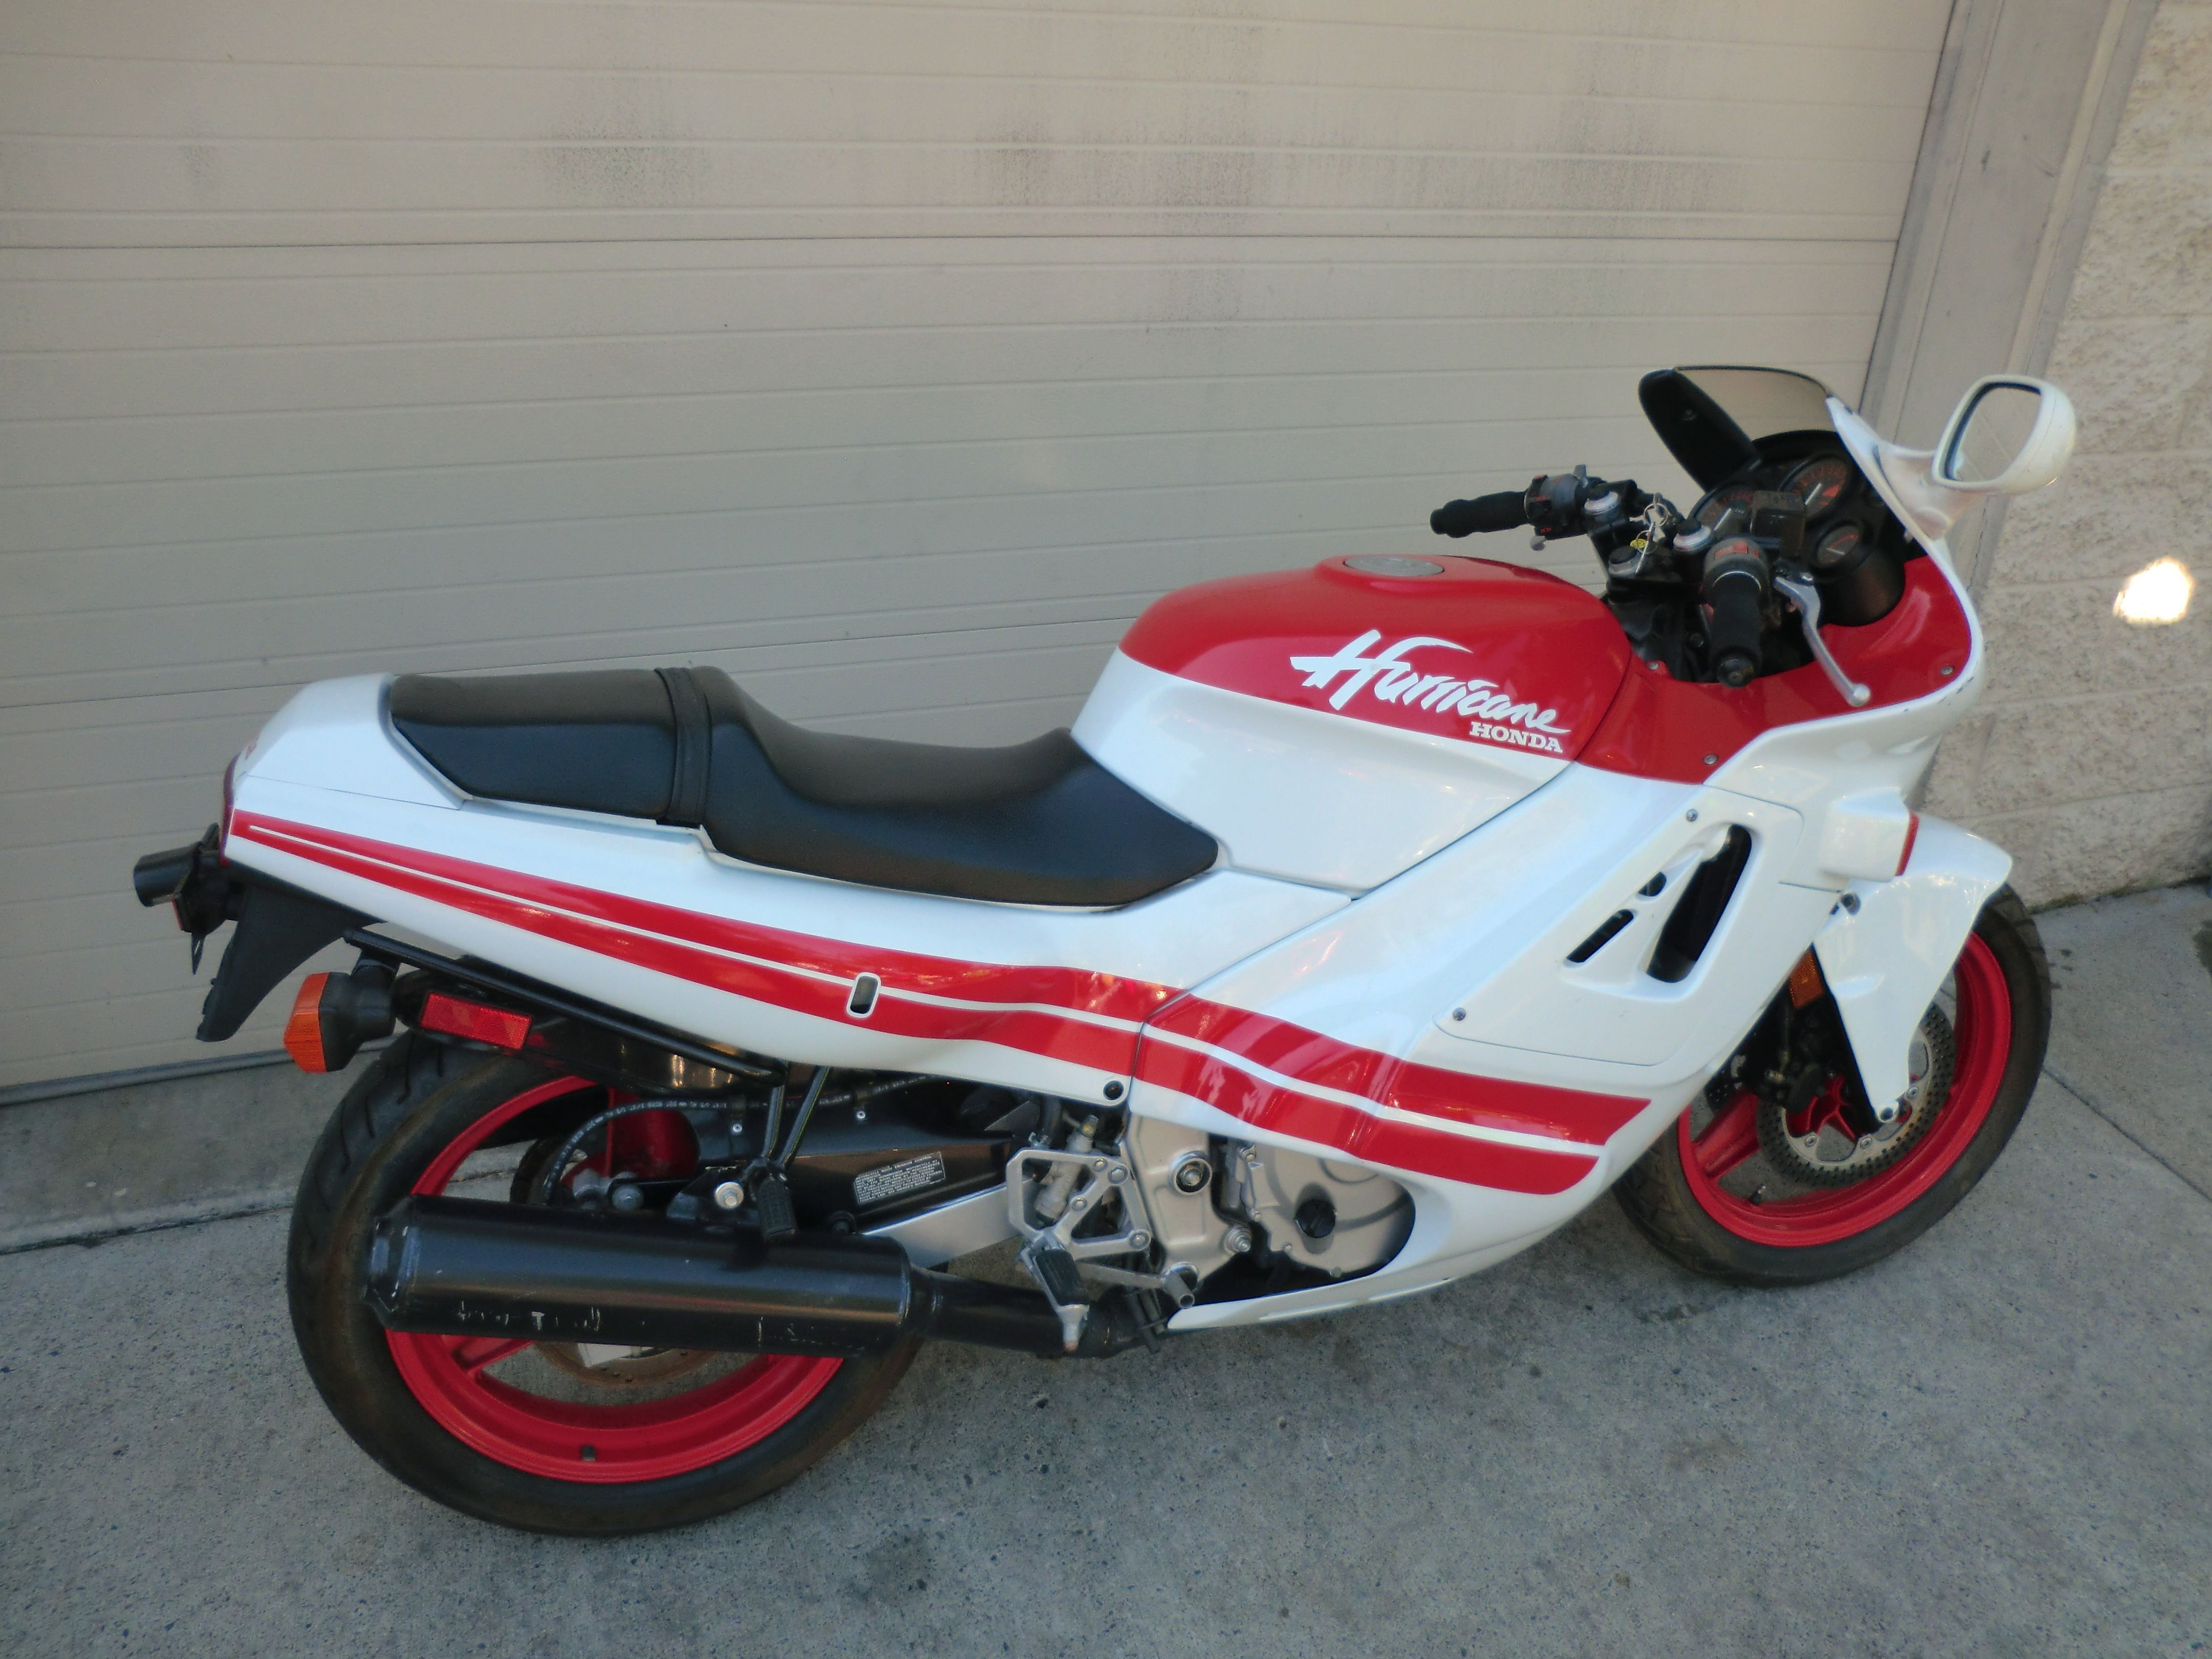 1987 honda hurricane pictures to pin on pinterest pinsdaddy for Honda hurricane 1000